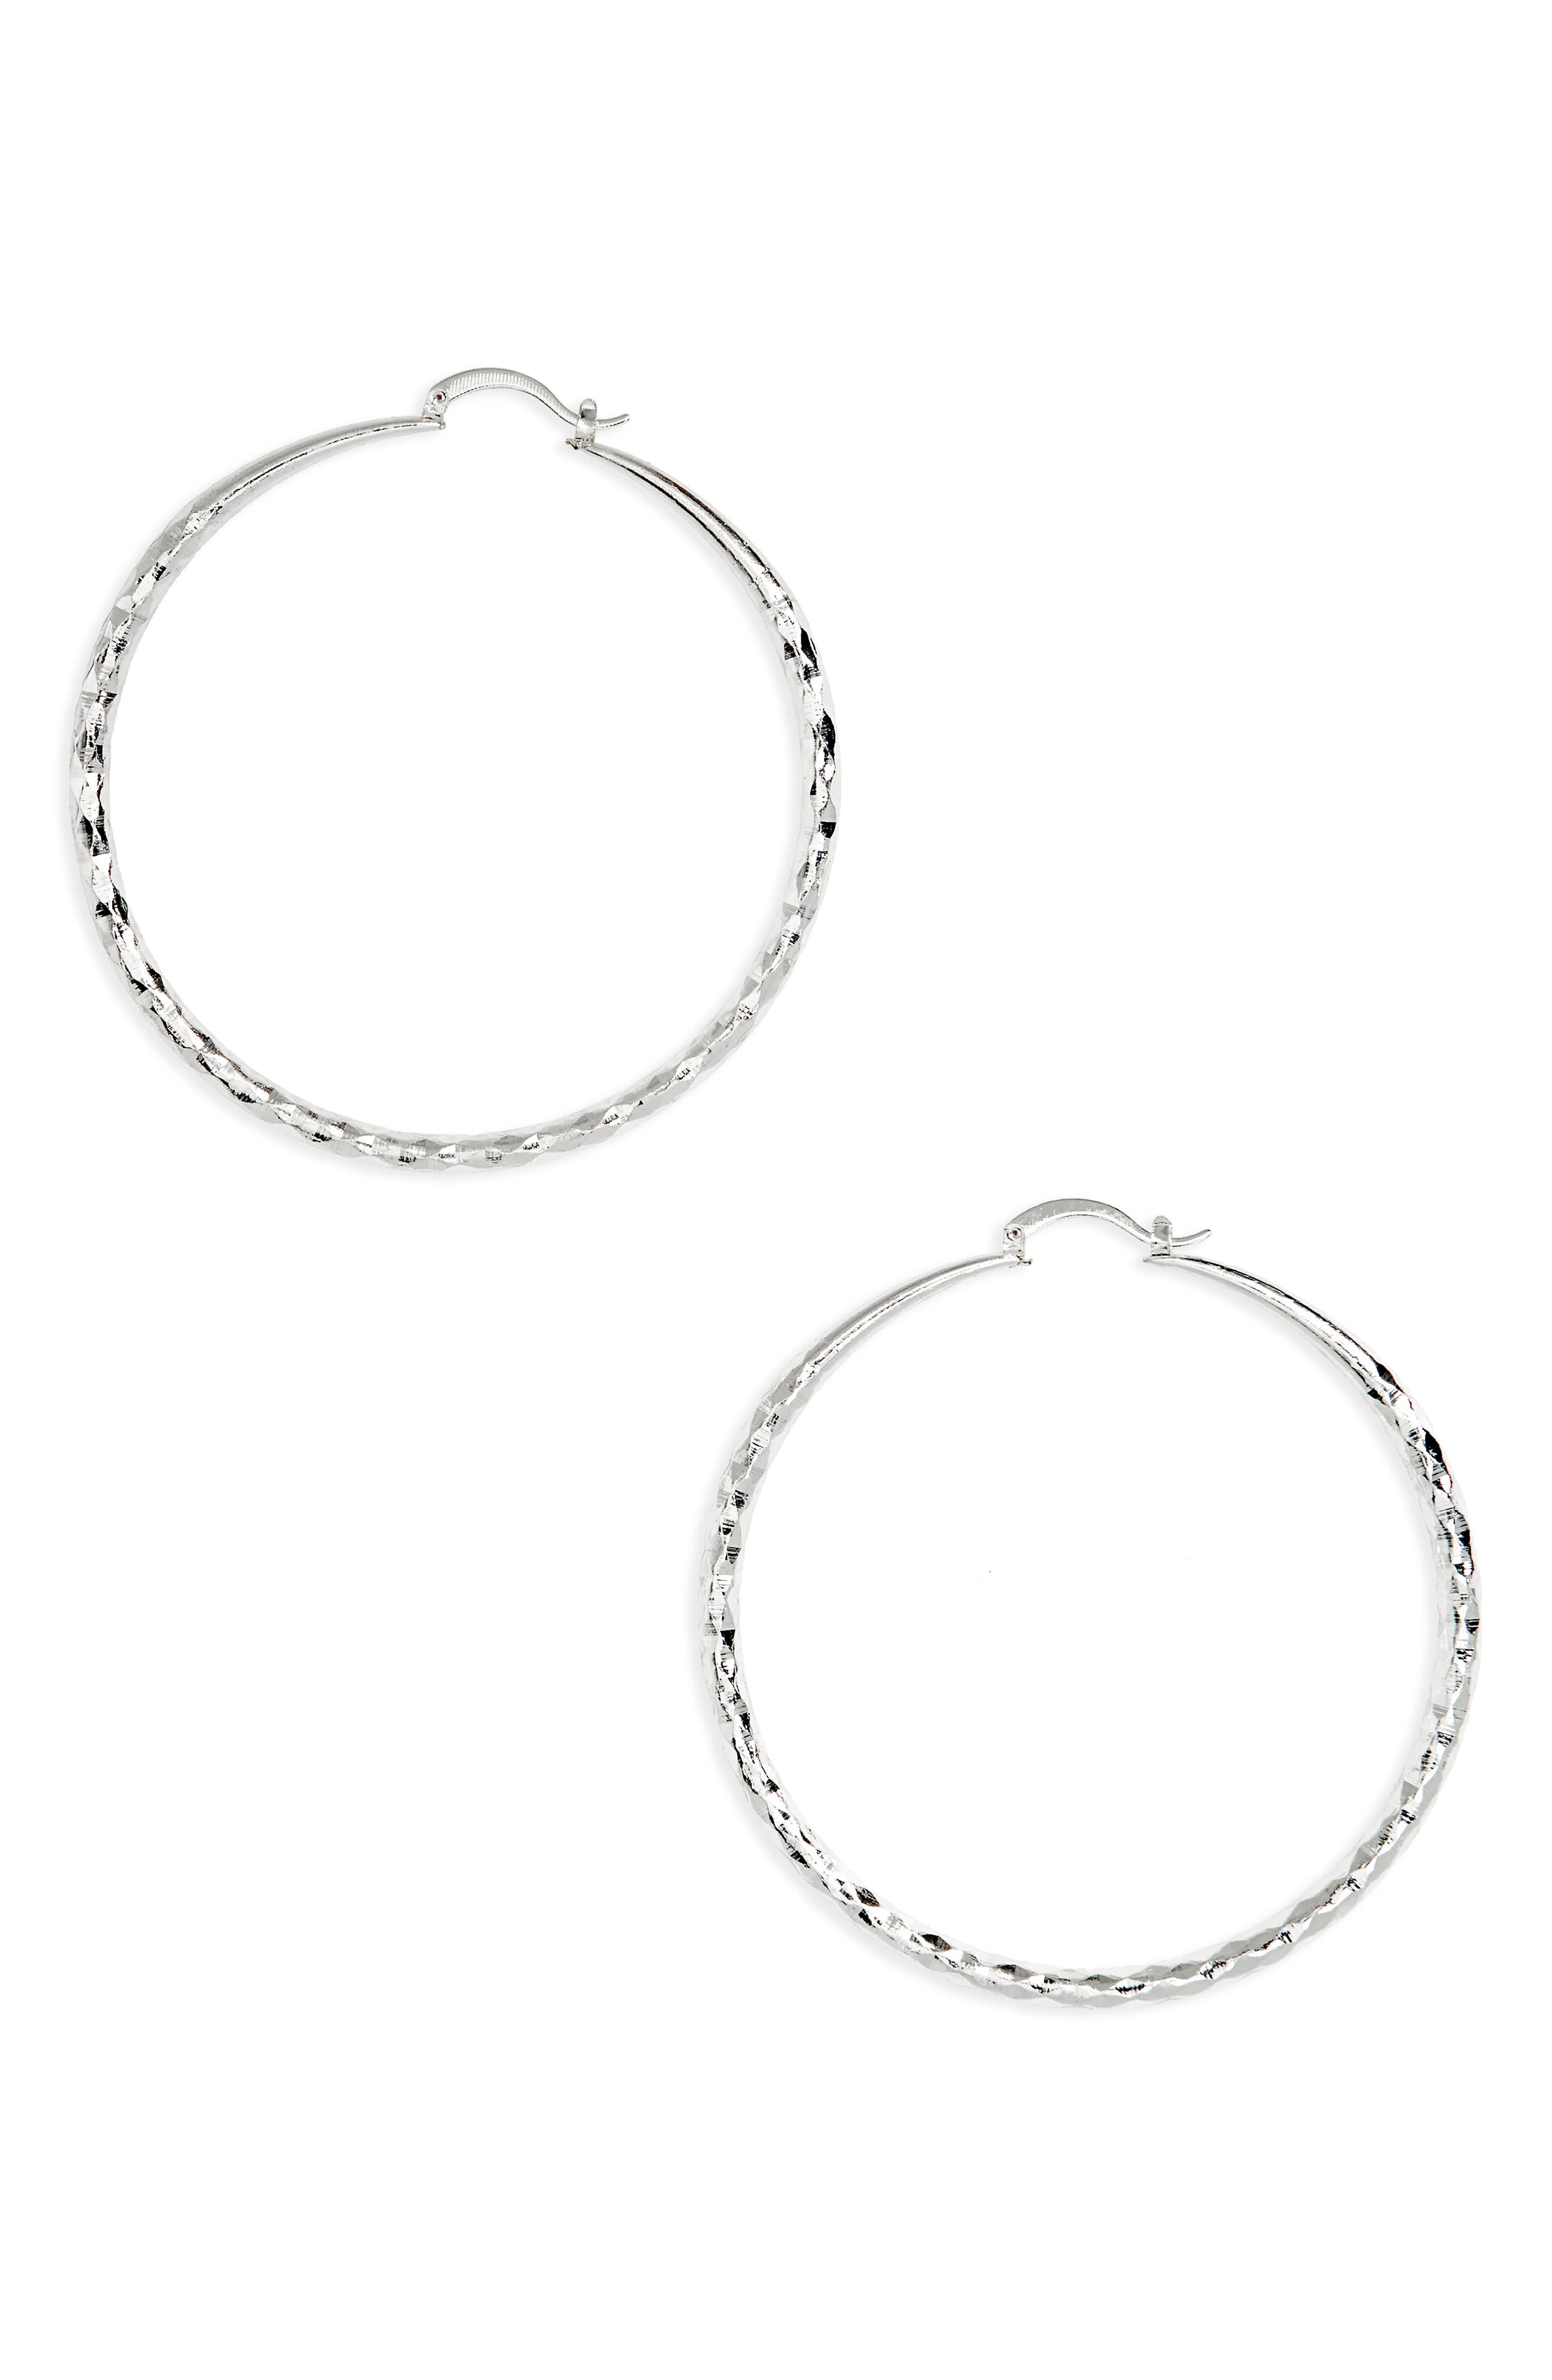 Oversized Textured Hoop Earrings,                         Main,                         color, Silver